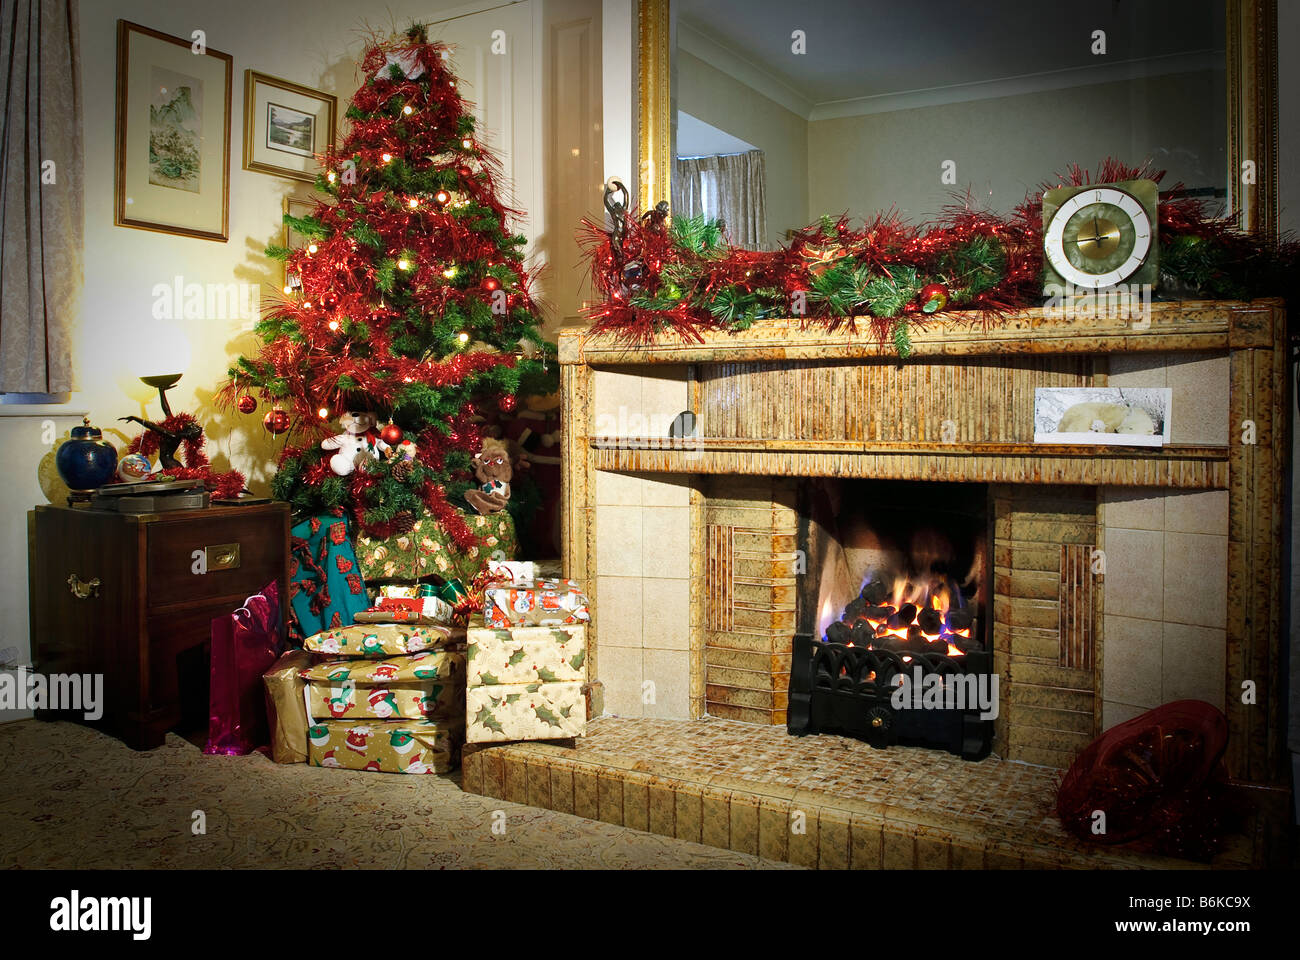 Christmas presents under the tree beside a warm fire - Stock Image